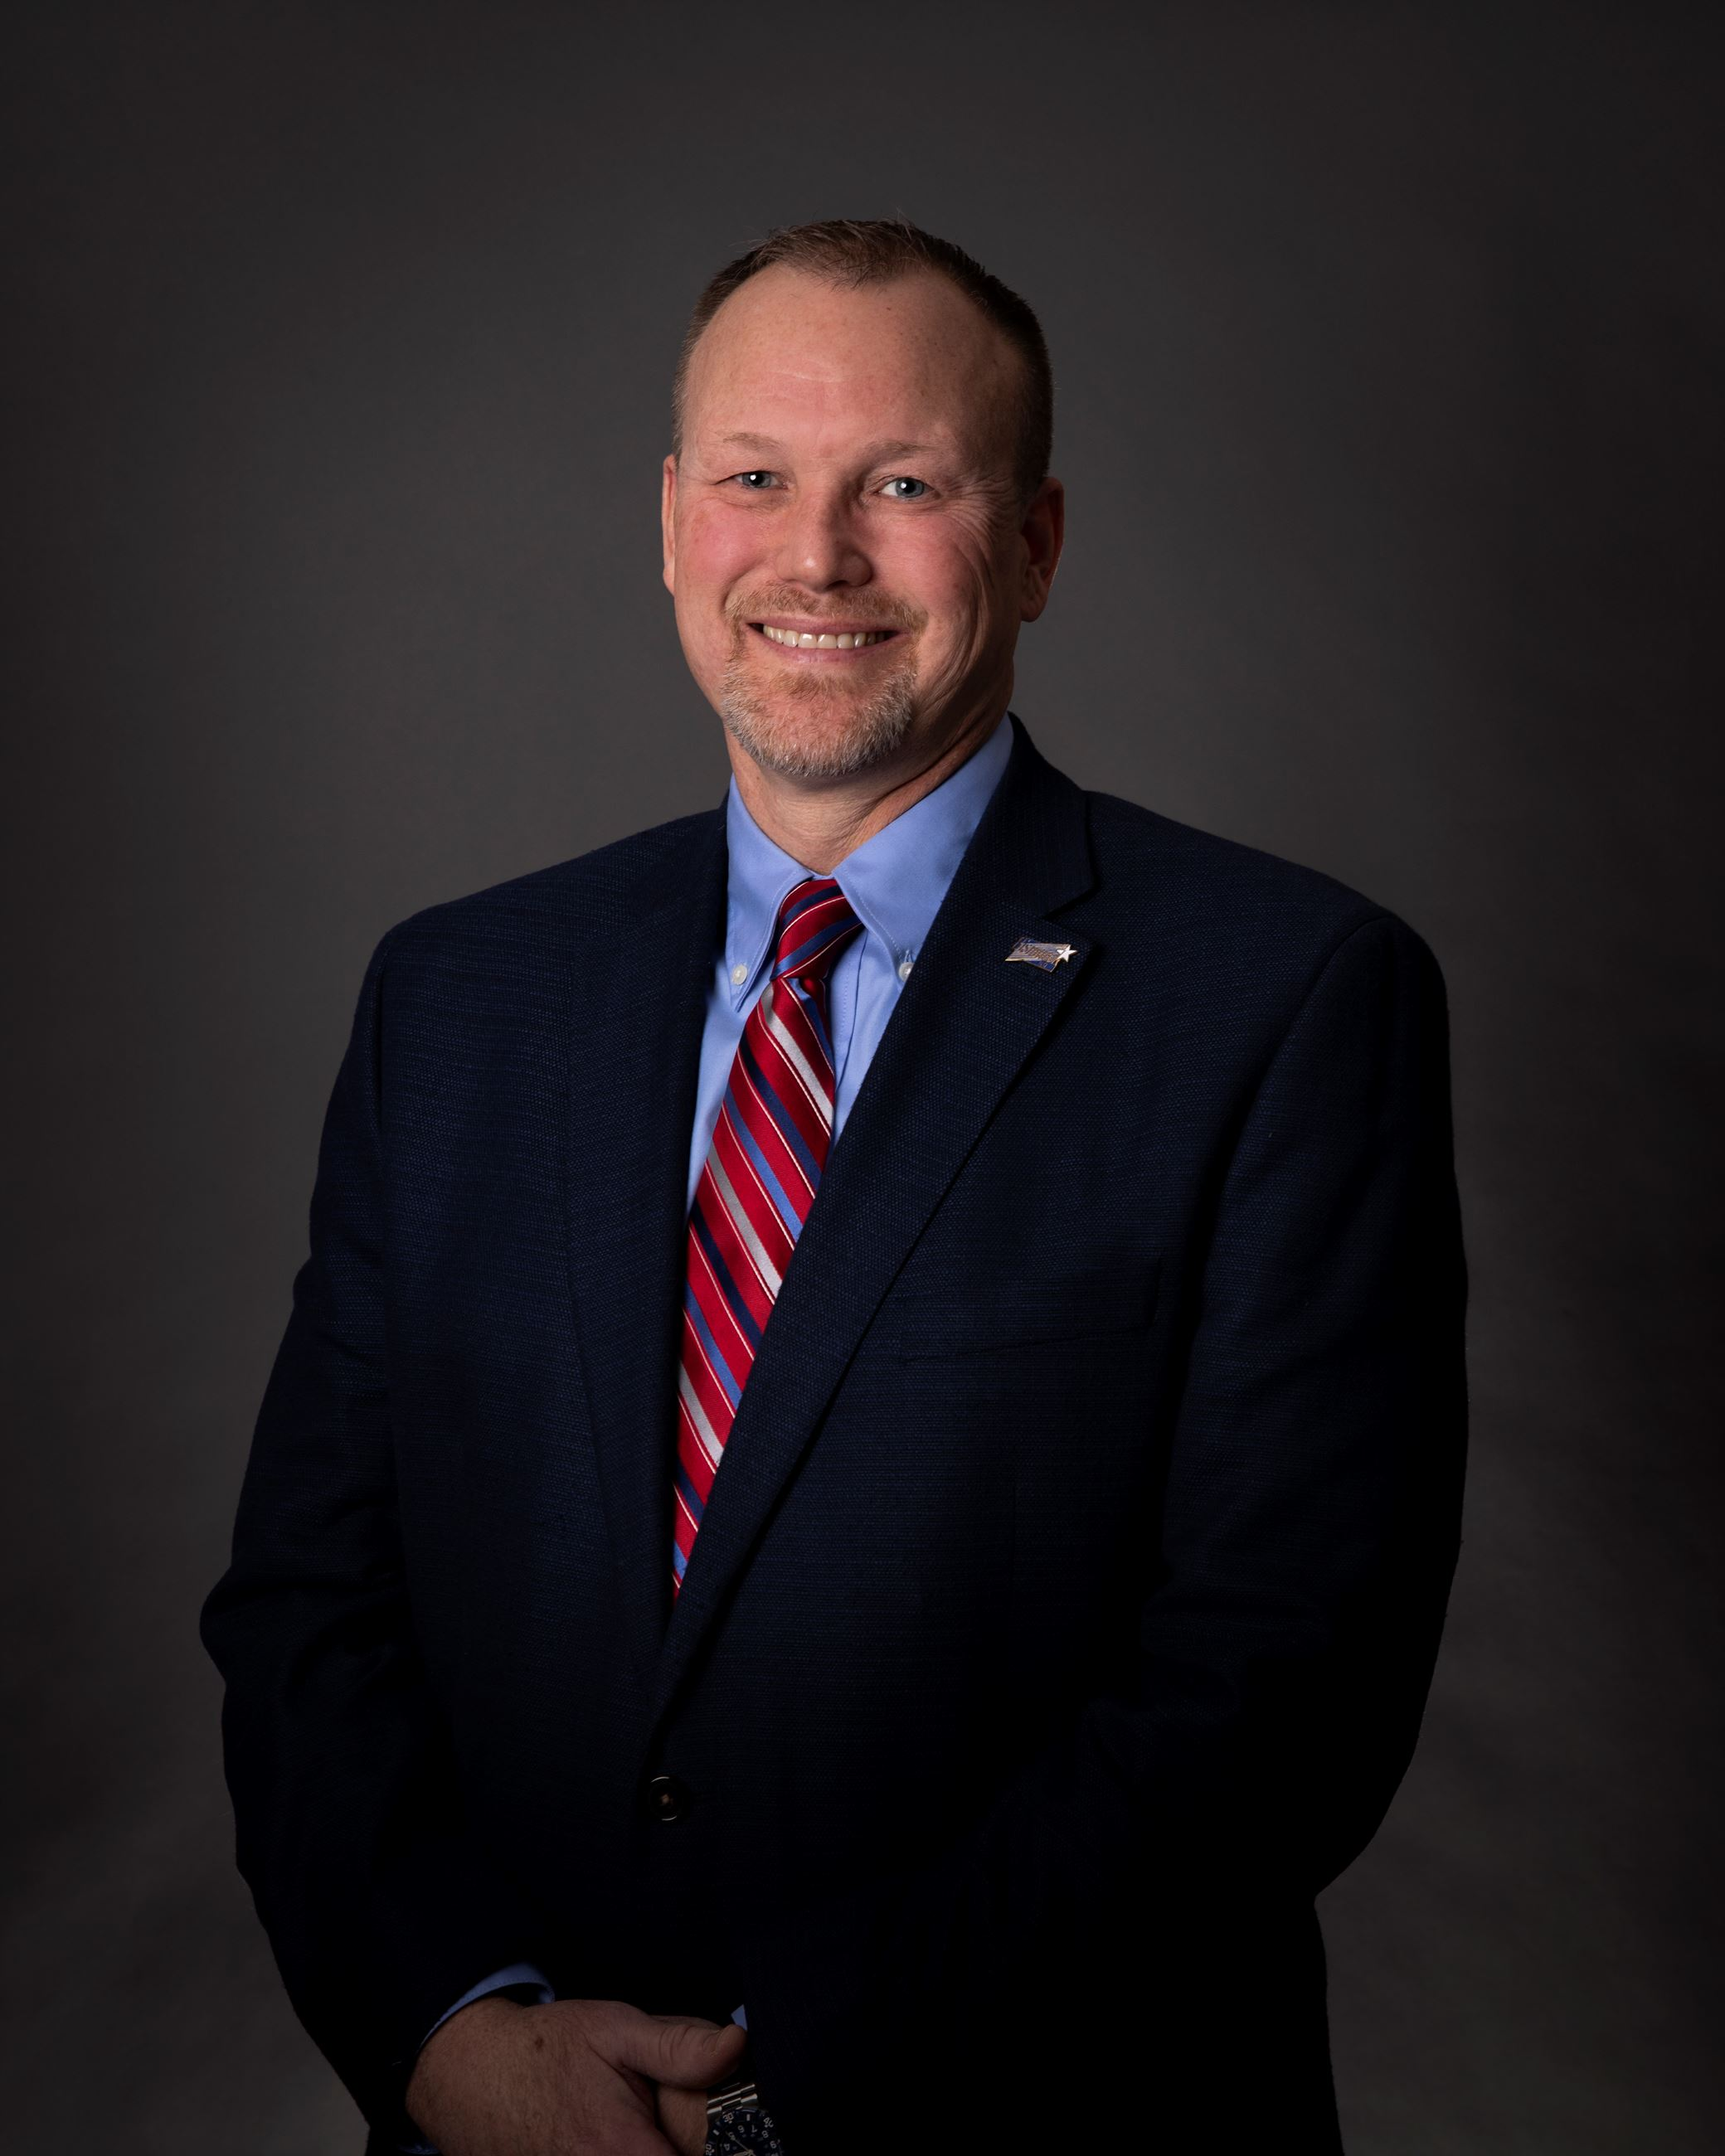 Steve Bakken Mayor